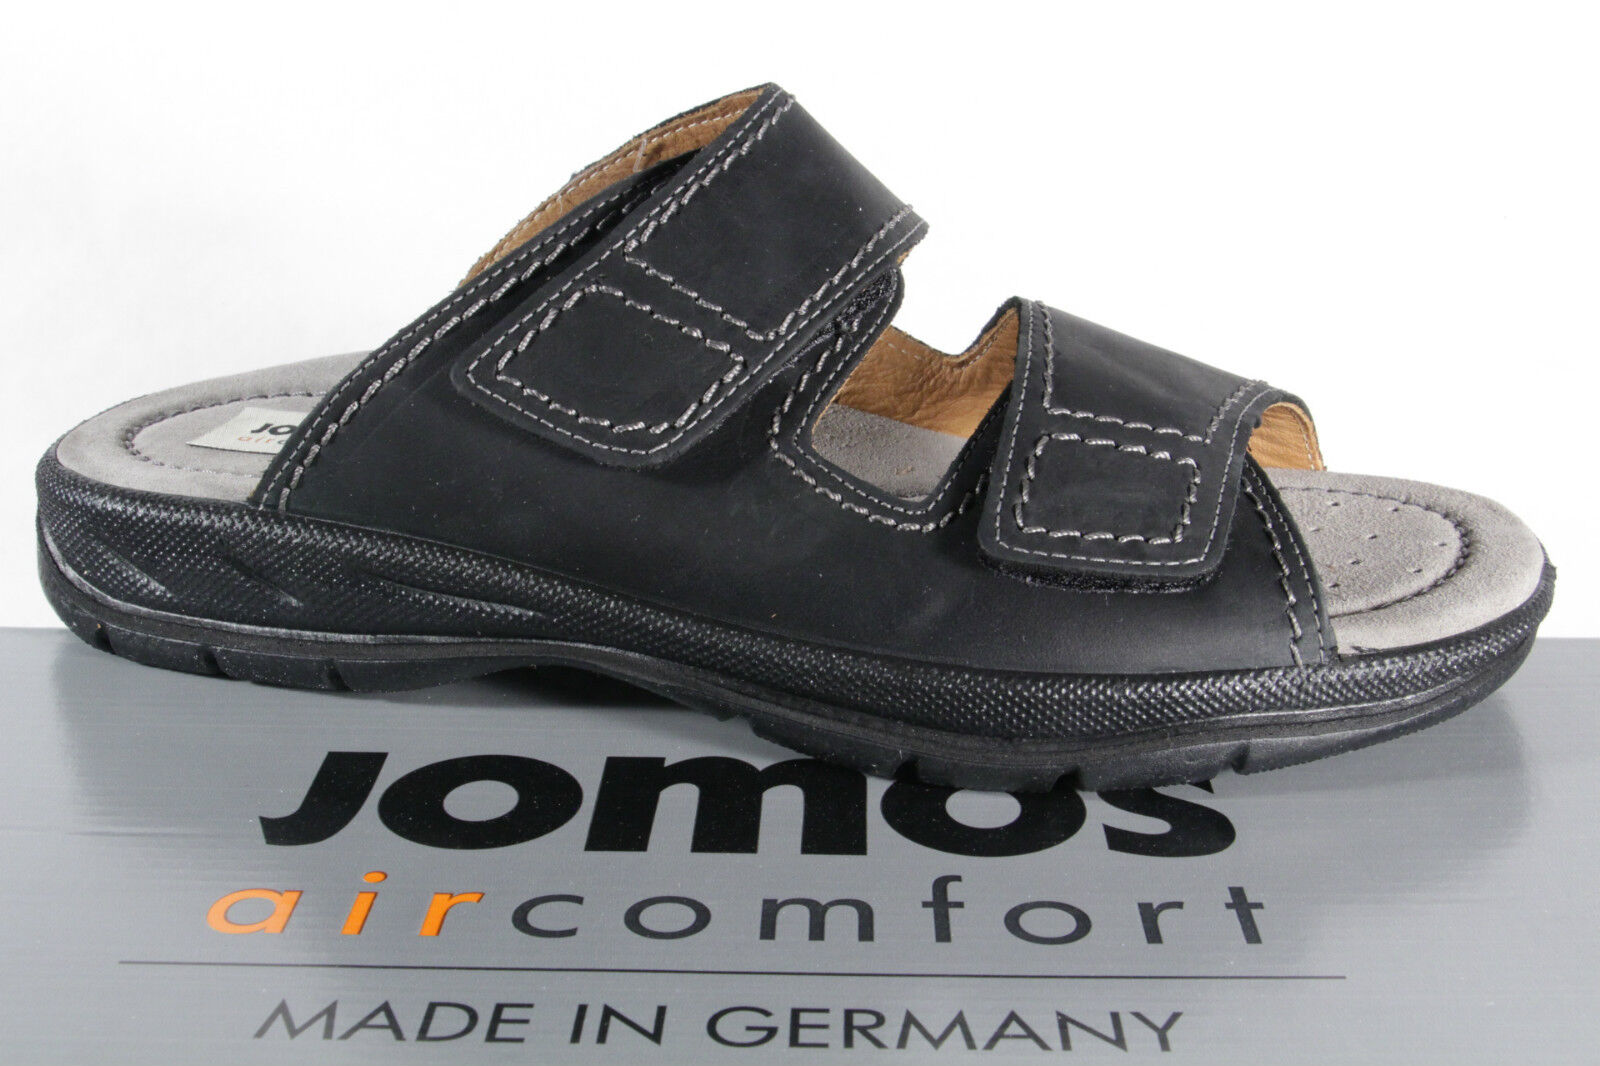 Jomos Men's Slippers Pantolette Clogs Genuine Leather 503601  Nuovo  nuovi prodotti novità